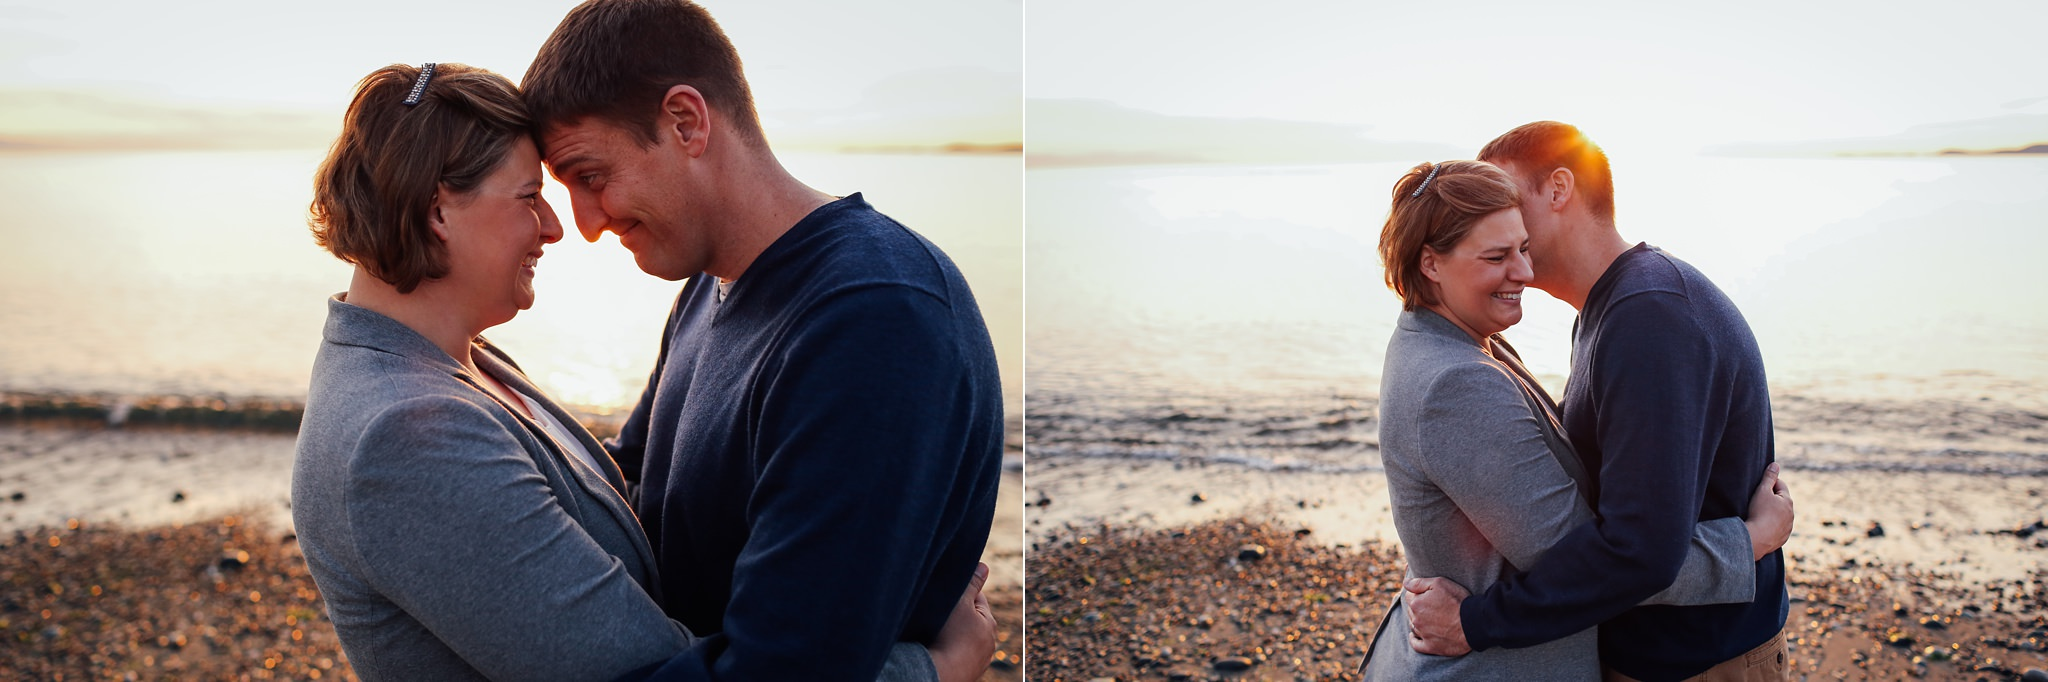 Whidbey-Island-Family-Photographer-Kara-Chappell-Photography_1213.jpg